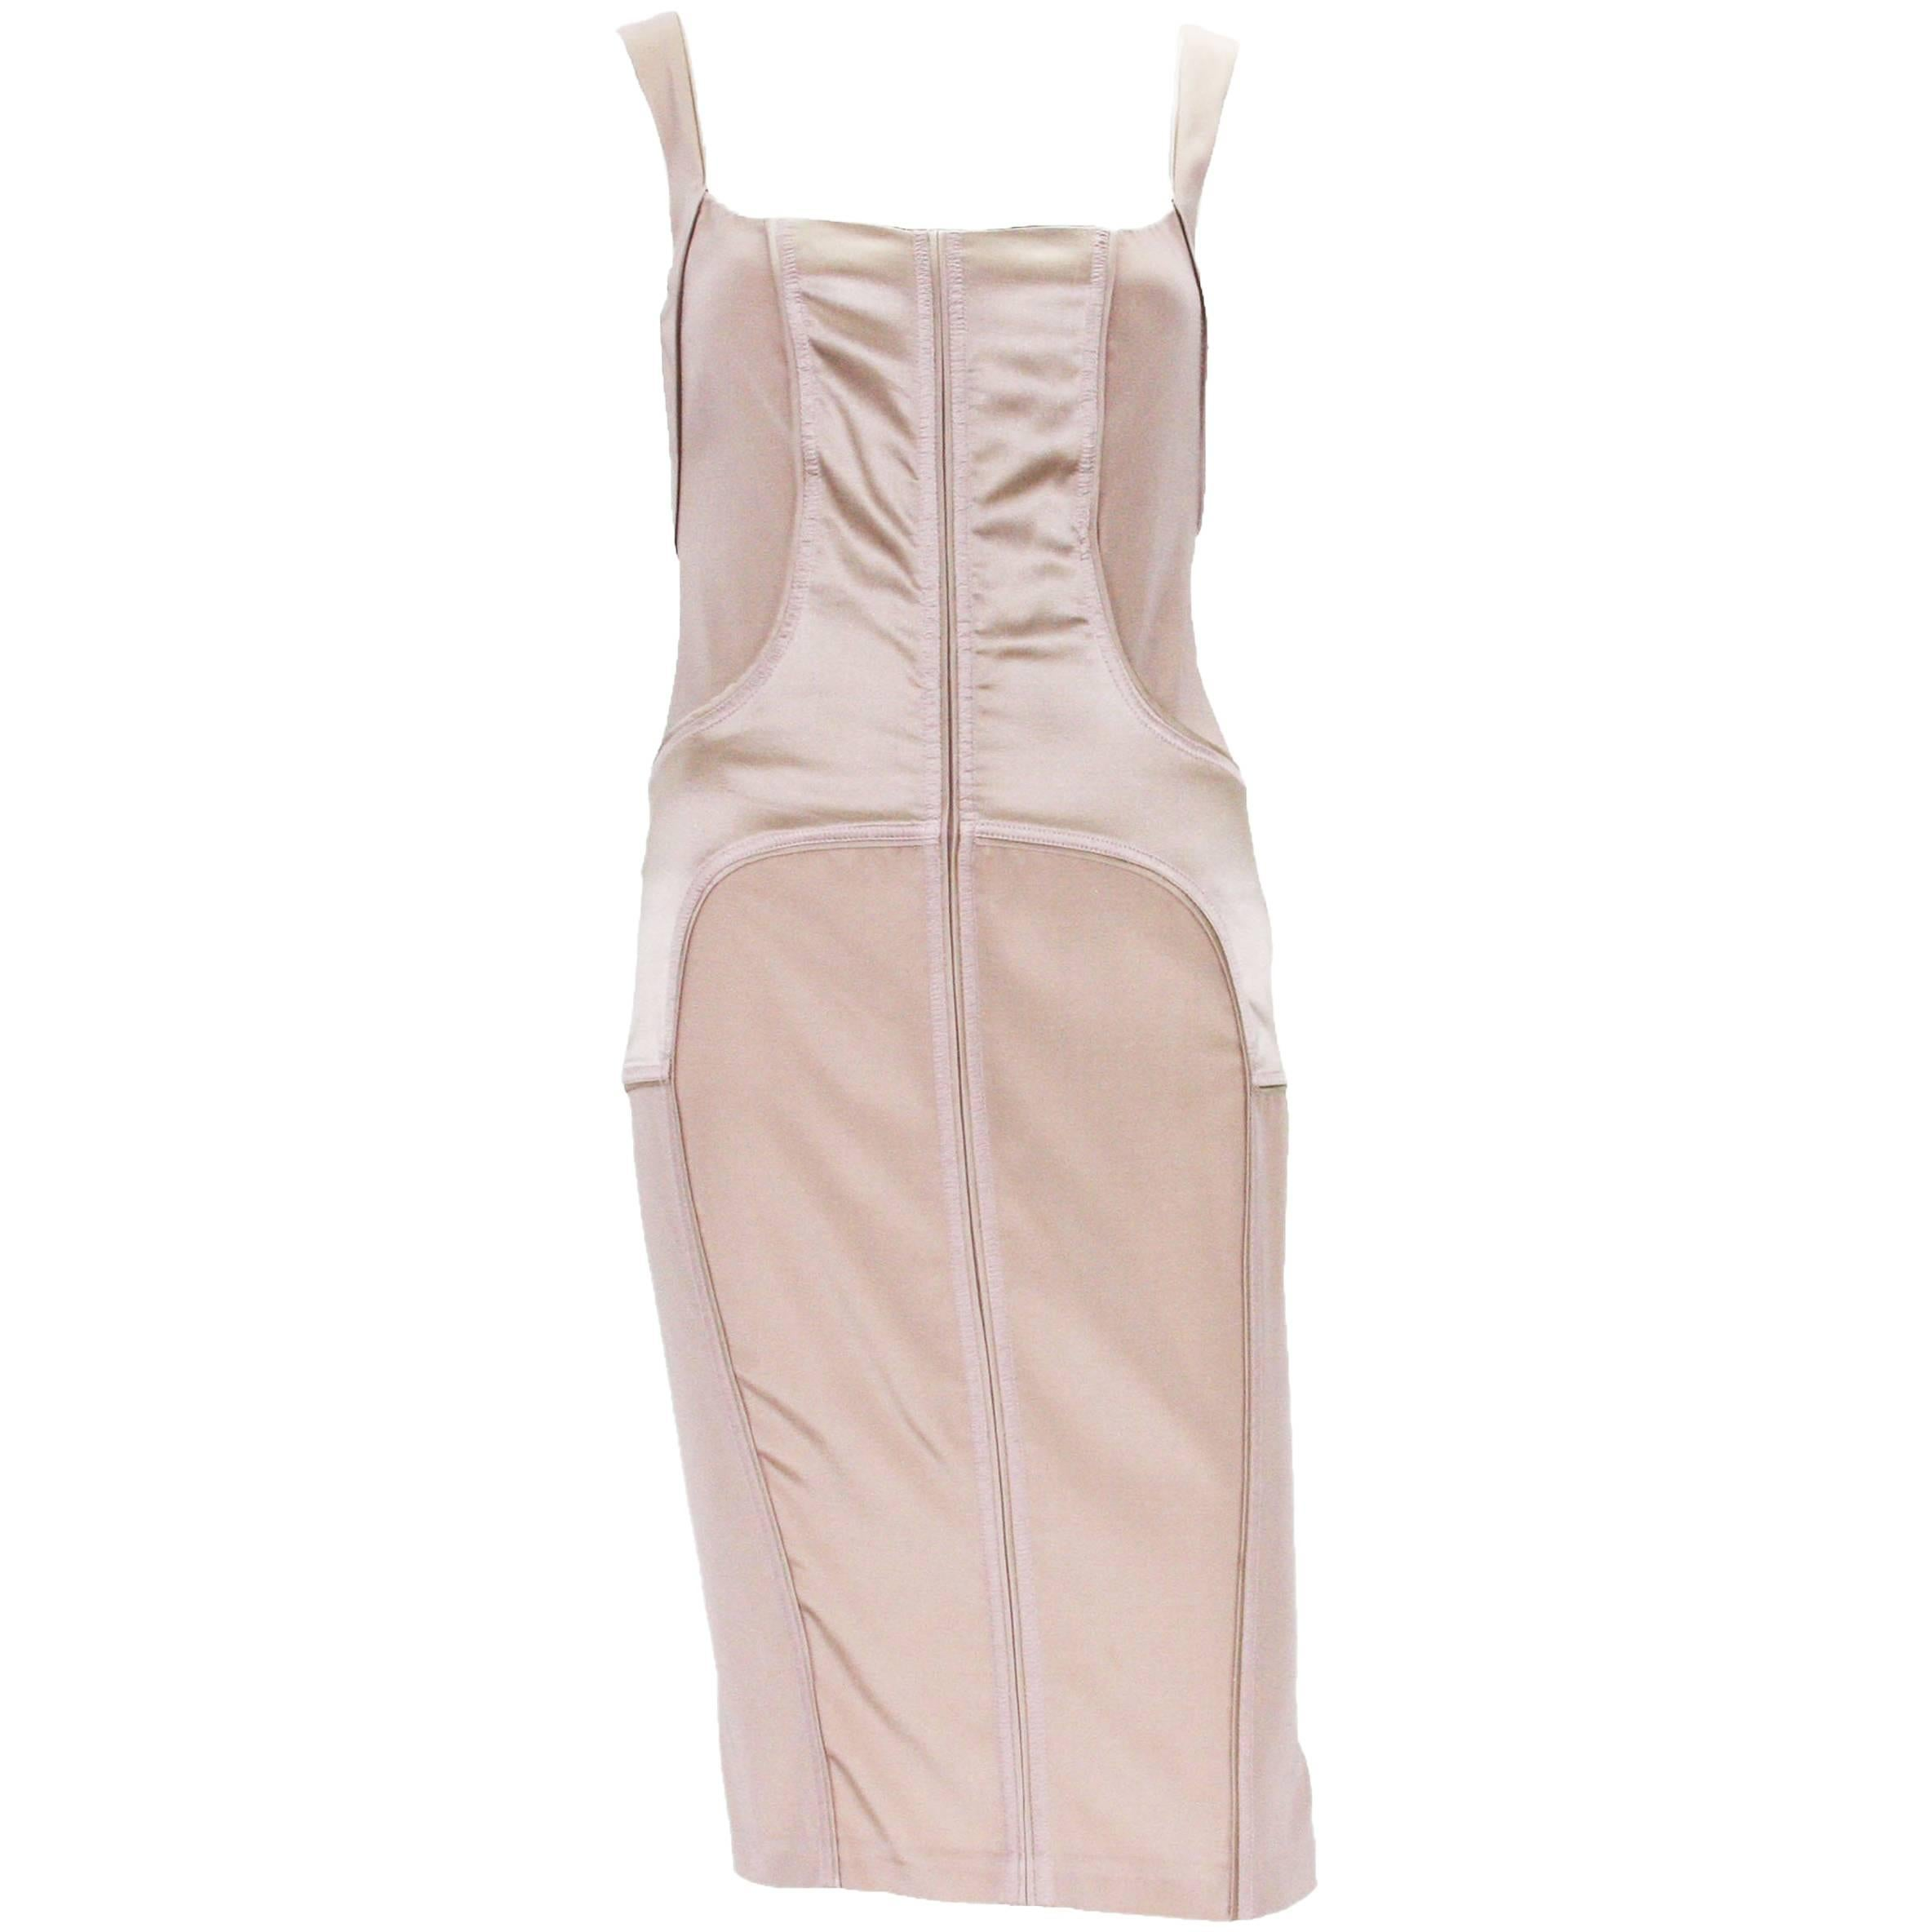 Tom Ford for Gucci 2003 Collection Silk Nude Stretch Bandage Dress It.38 - US 4